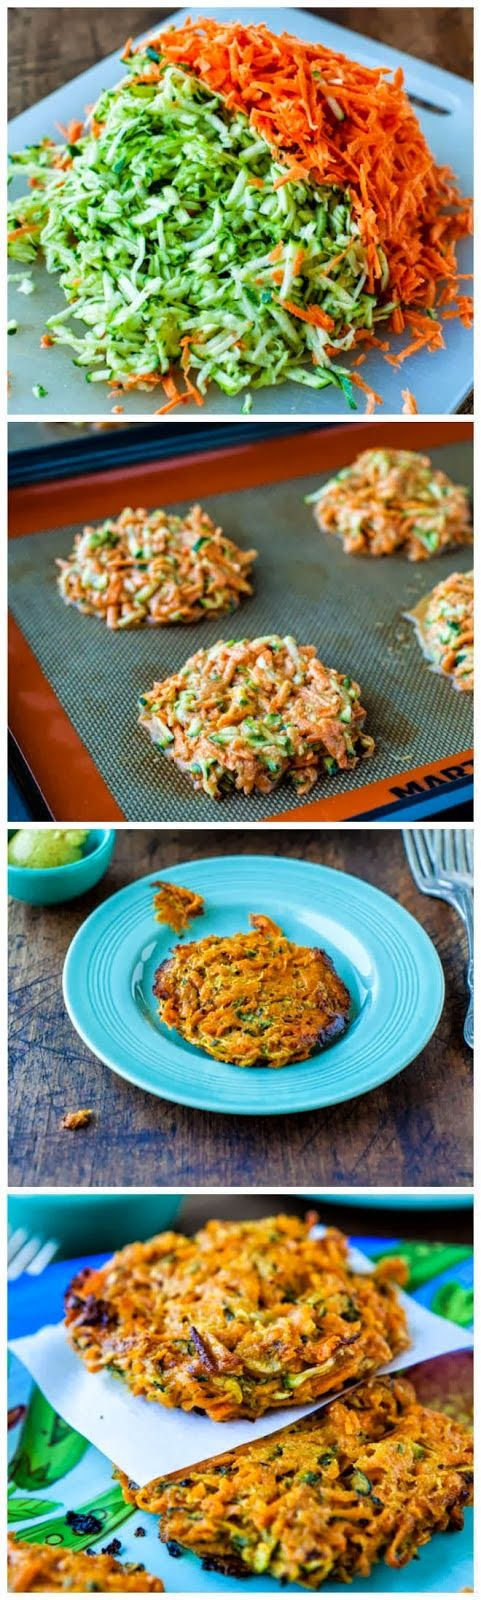 Baked Chipotle Sweet Potato and Zucchini Fritters, dinner sides, dinner, vegetarian